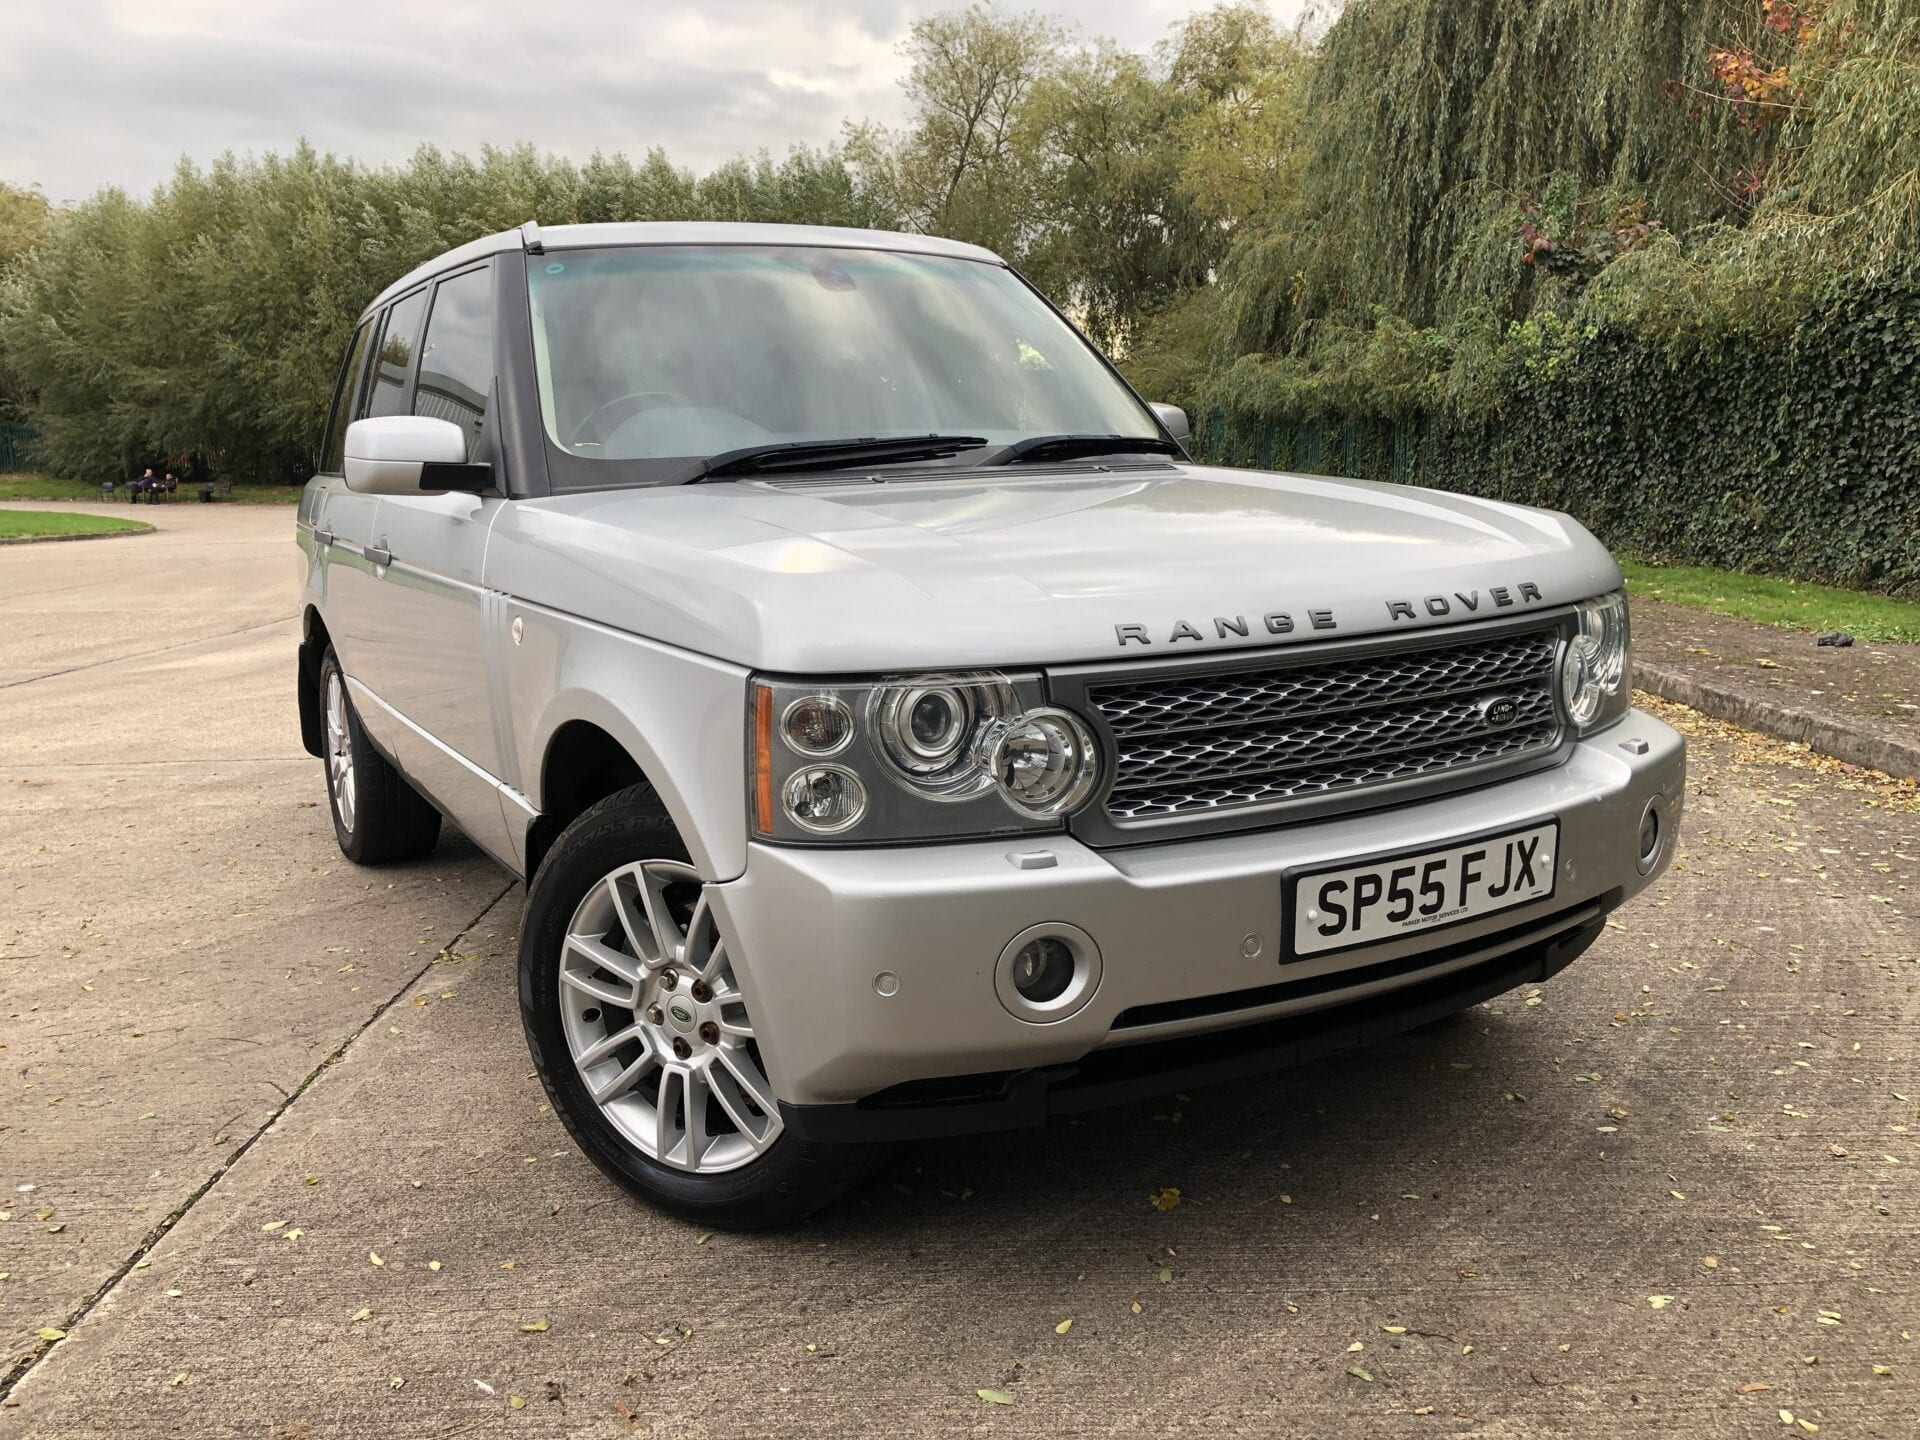 myCar UK - 2005 Land Rover Range Rover 3.0 Td6 Vogue SE